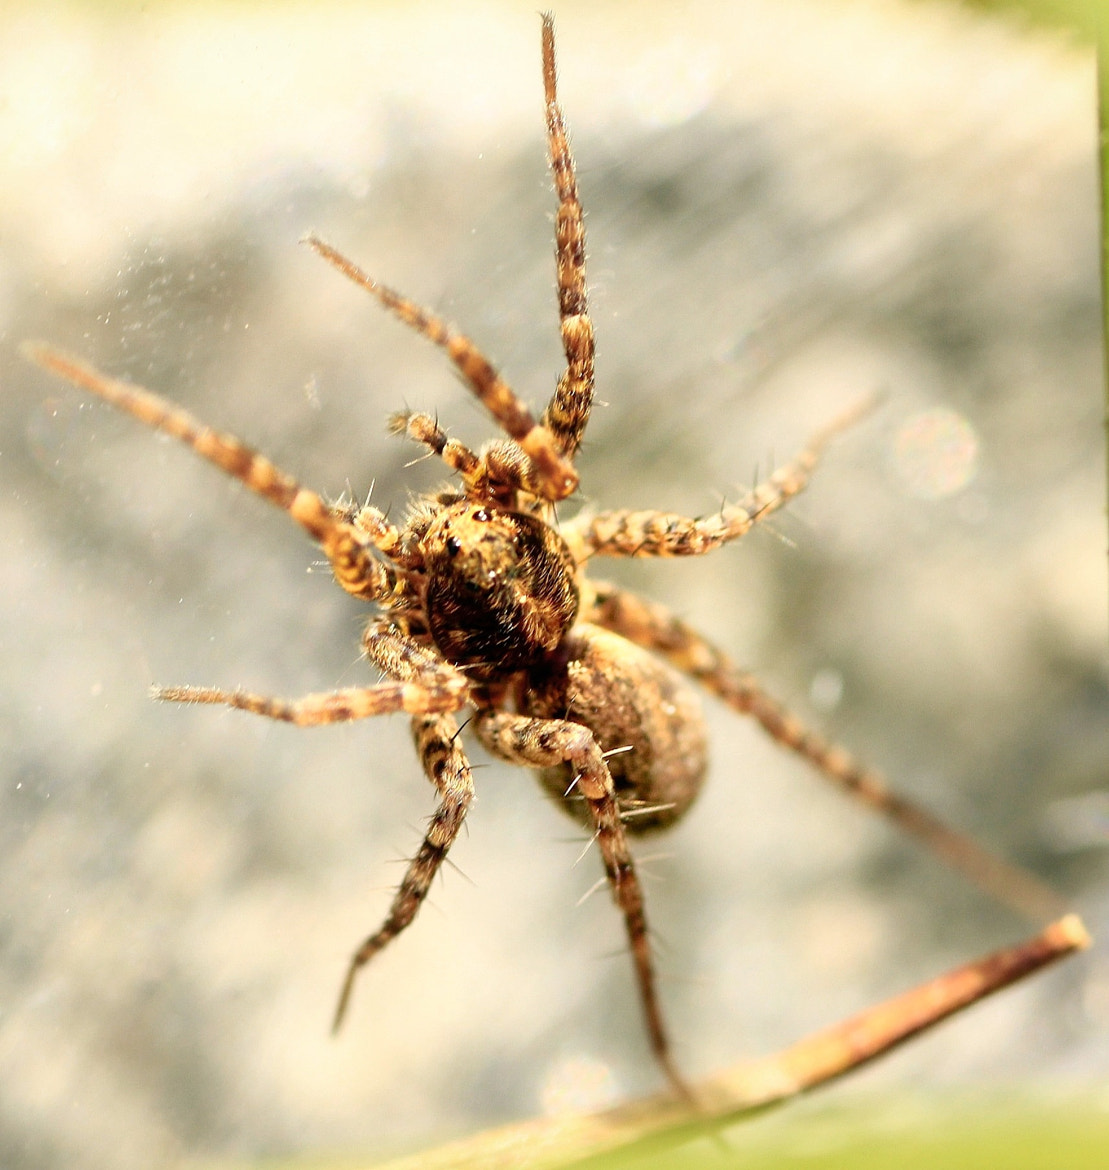 Photograph Spider by Philipp G on 500px